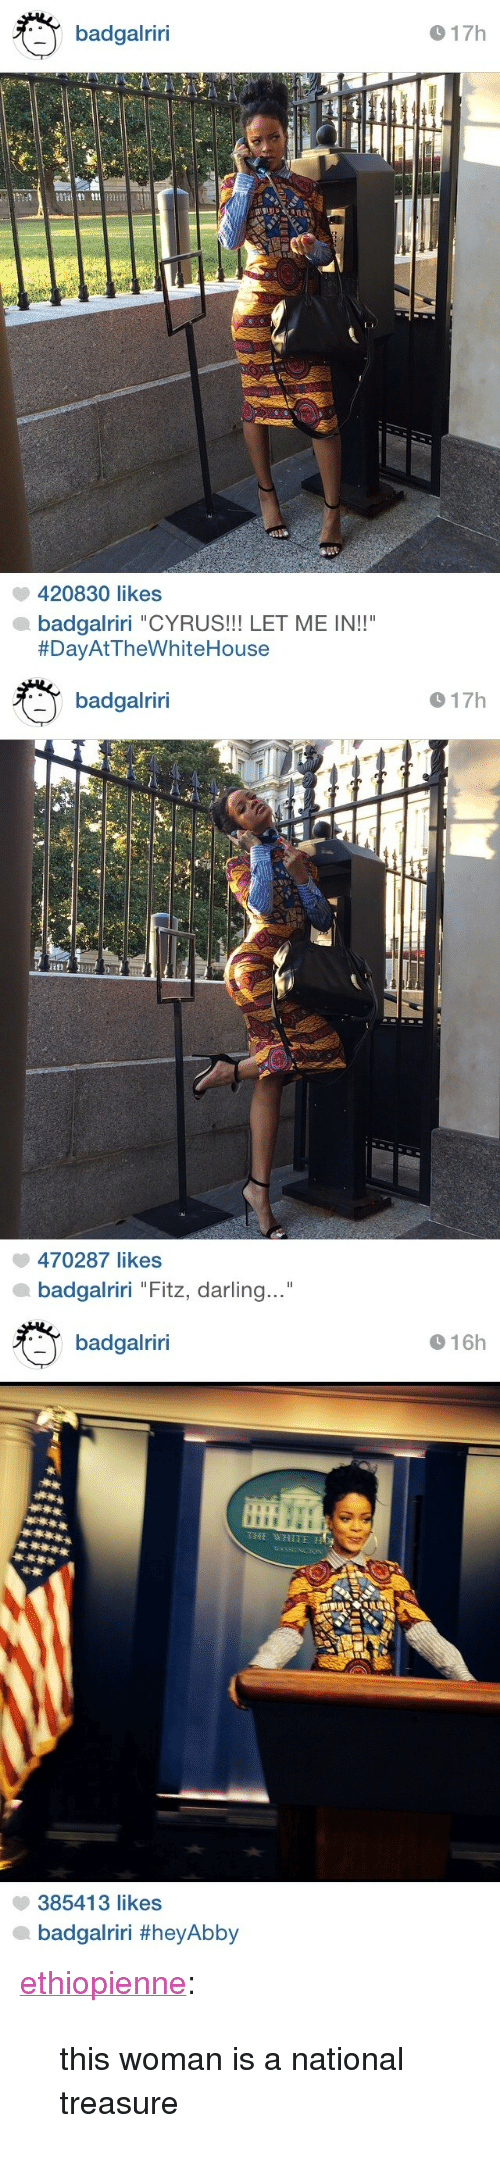 "Target, Tumblr, and Blog: badgalriri  17h  420830 likes  badgalriri ""CYRUS!!! LET ME IN!!""  #DayAt TheWhiteHouse   badgalriri  17h  470287 likes  badgalriri ""Fitz, darling ""   16h  badgalriri  THE WHITE HO  385413 likes  badgairiri <p><a class=""tumblr_blog"" href=""http://ethiopienne.com/post/102366038498/this-woman-is-a-national-treasure"" target=""_blank"">ethiopienne</a>:</p> <blockquote> <p>this woman is a national treasure</p> </blockquote>"